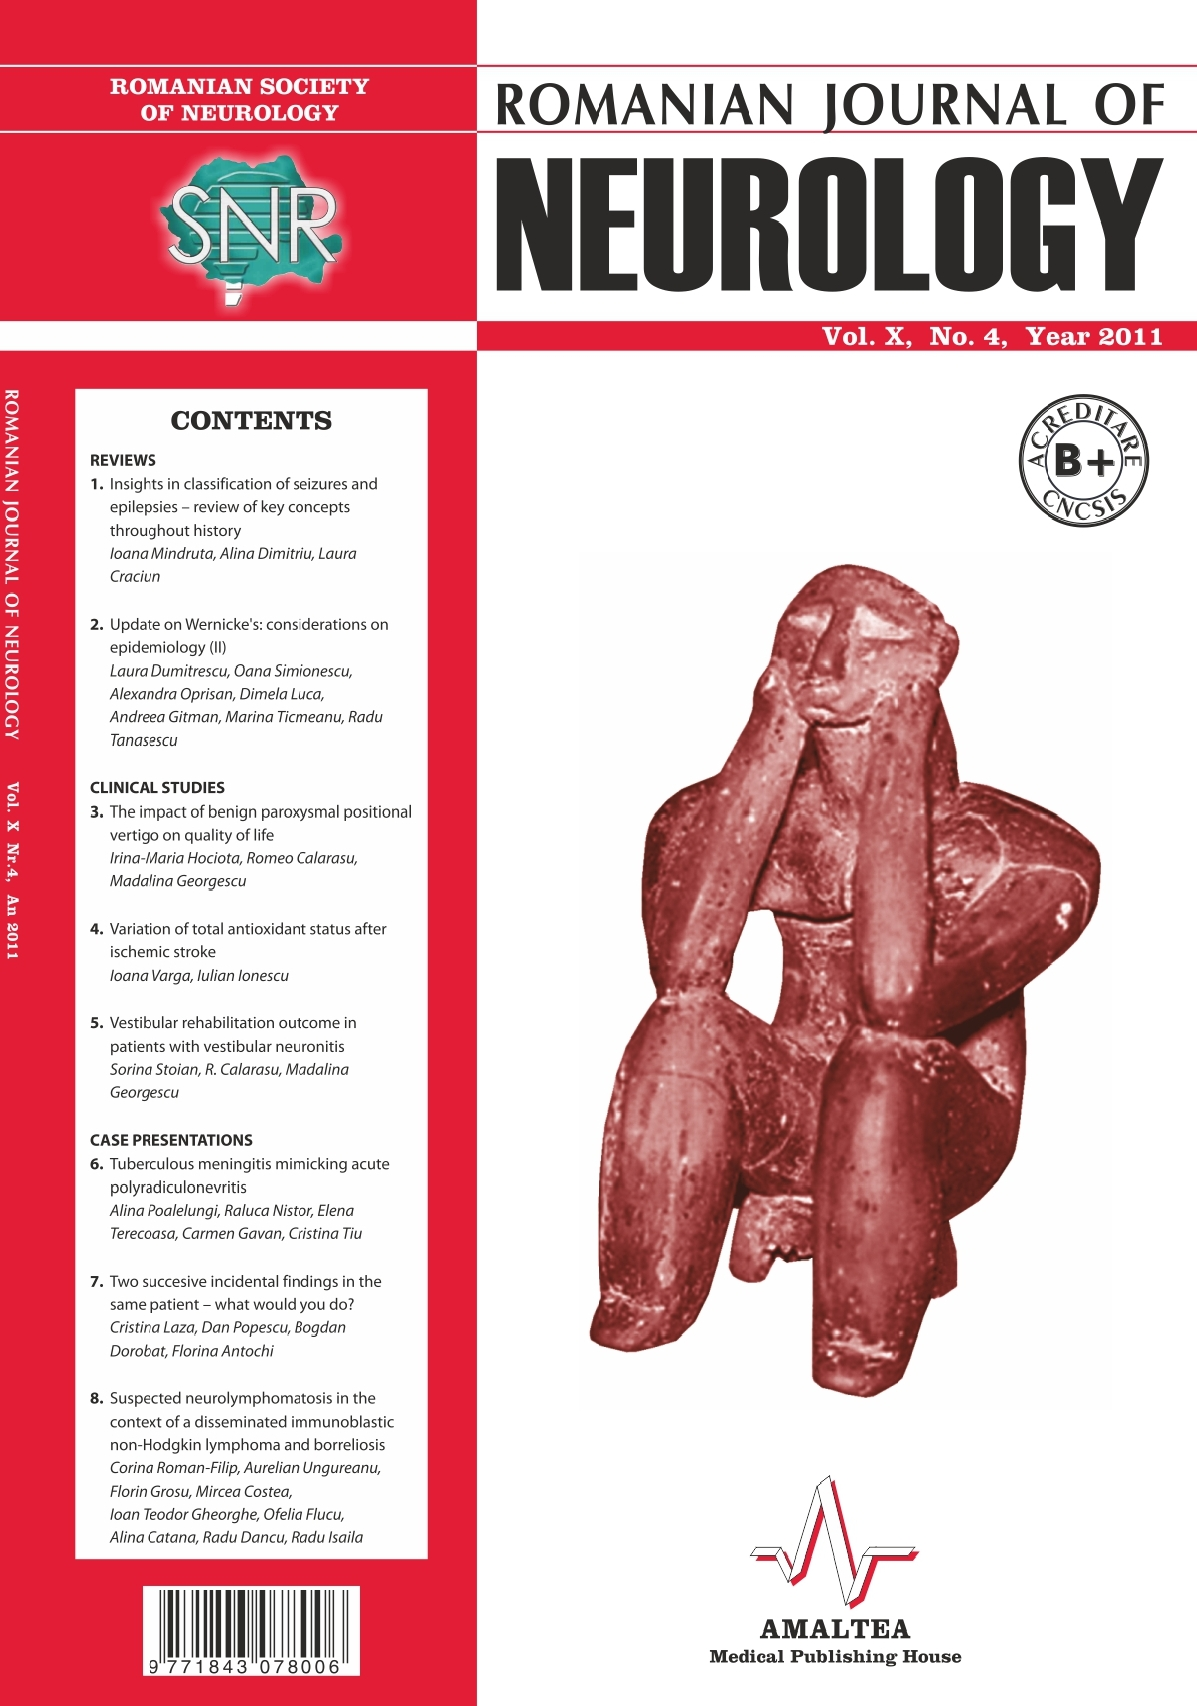 Romanian Journal of Neurology, Volume X, No. 4, 2011